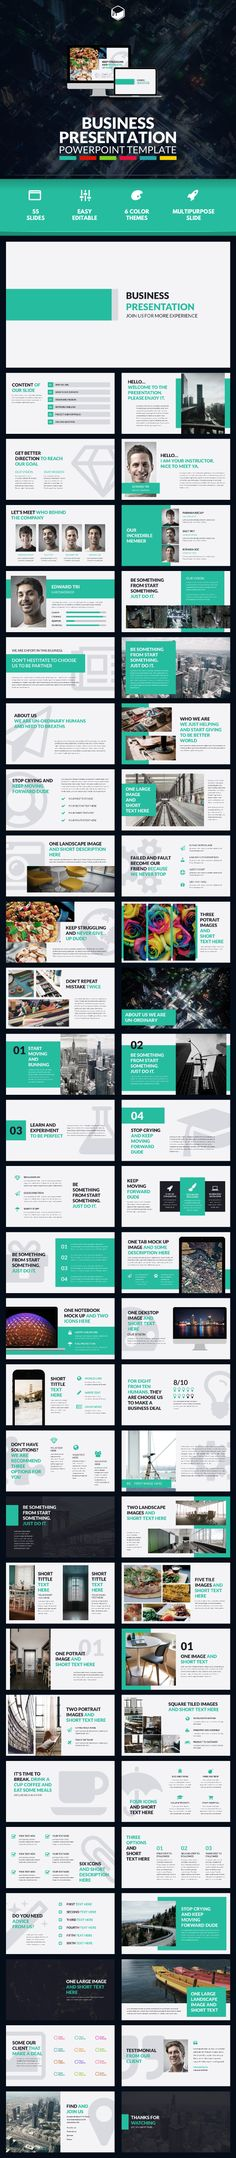 Buy Business Presentation 3 PowerPoint Template